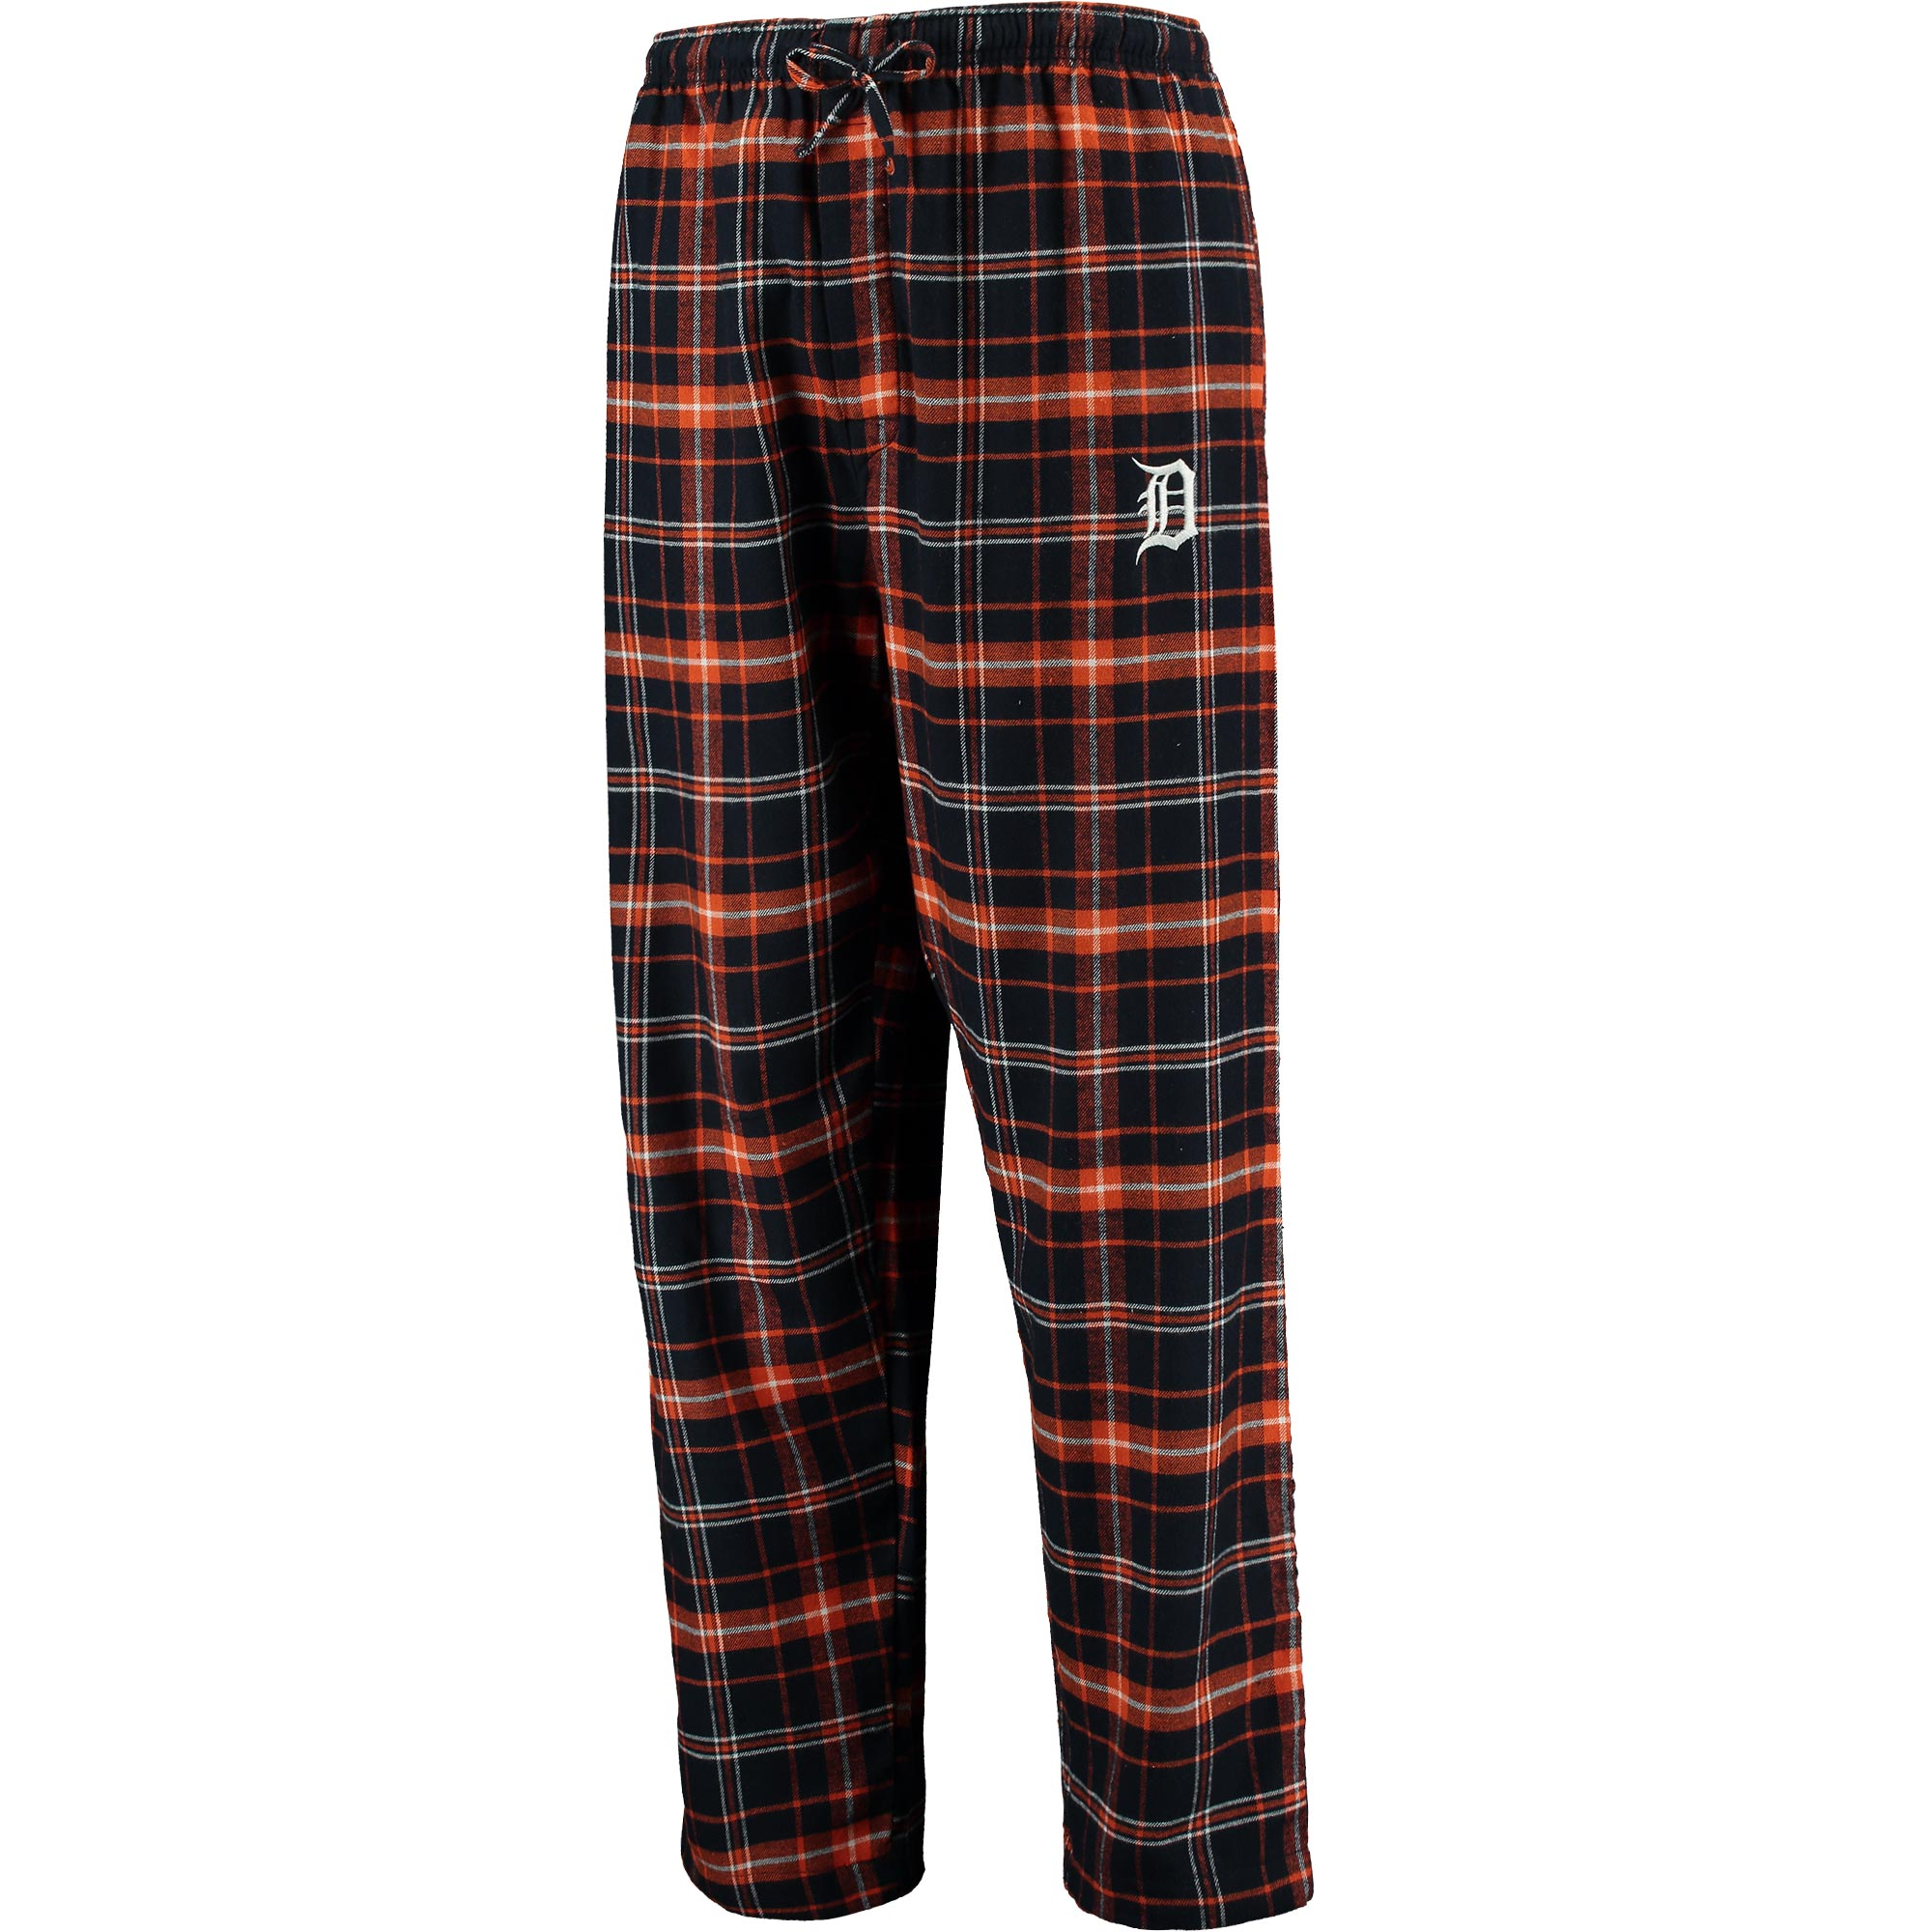 Detroit Tigers Concepts Sport Ultimate Plaid Flannel Pants - Navy/Orange